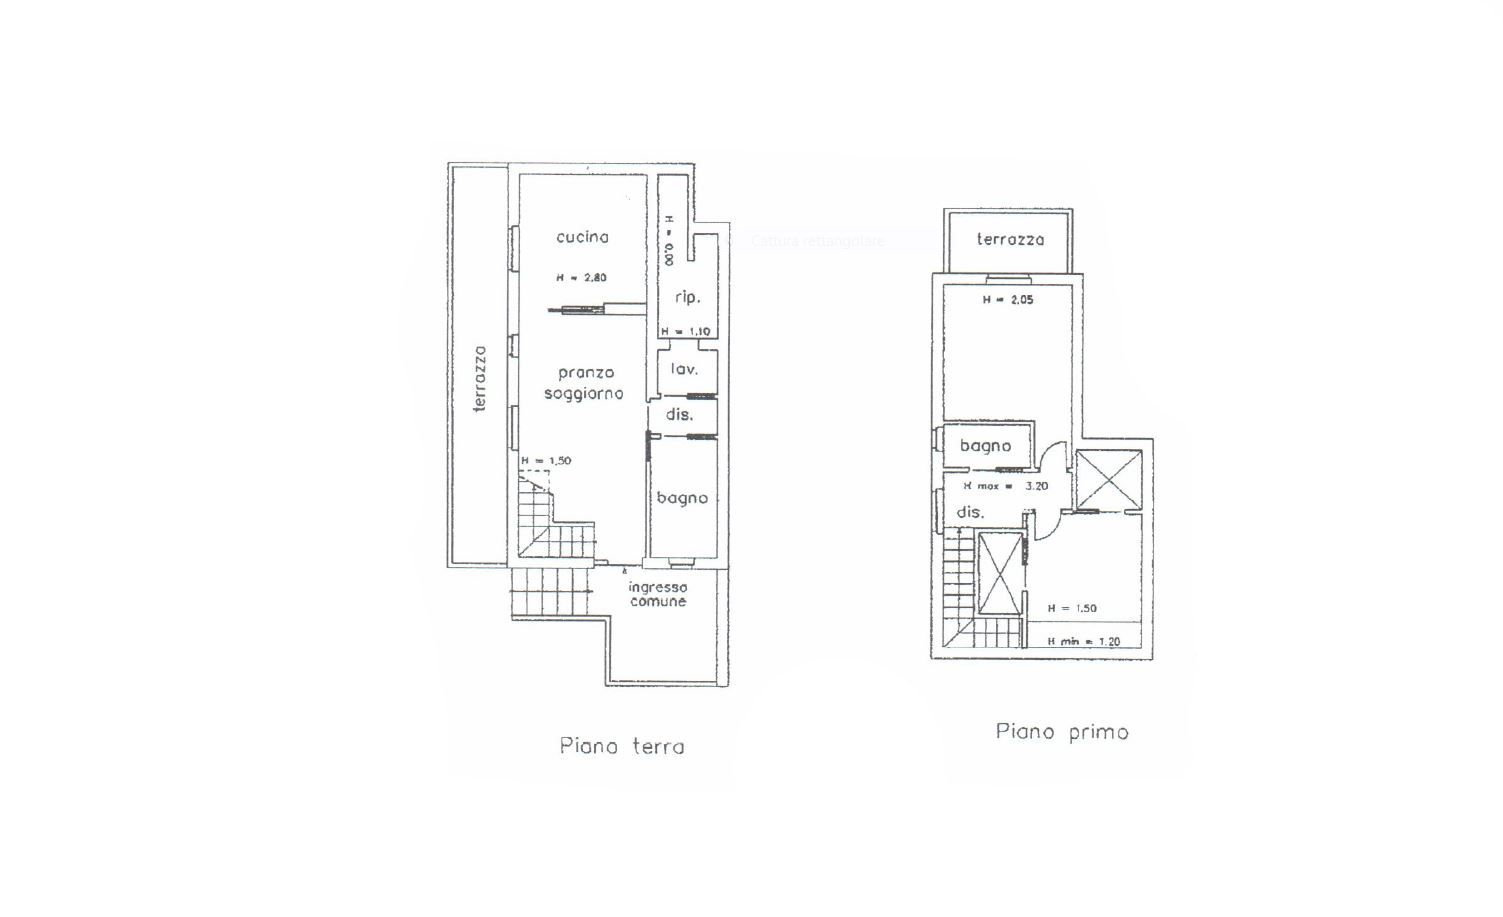 Apartment for sale, ref. R/625 (Plan 1/1)